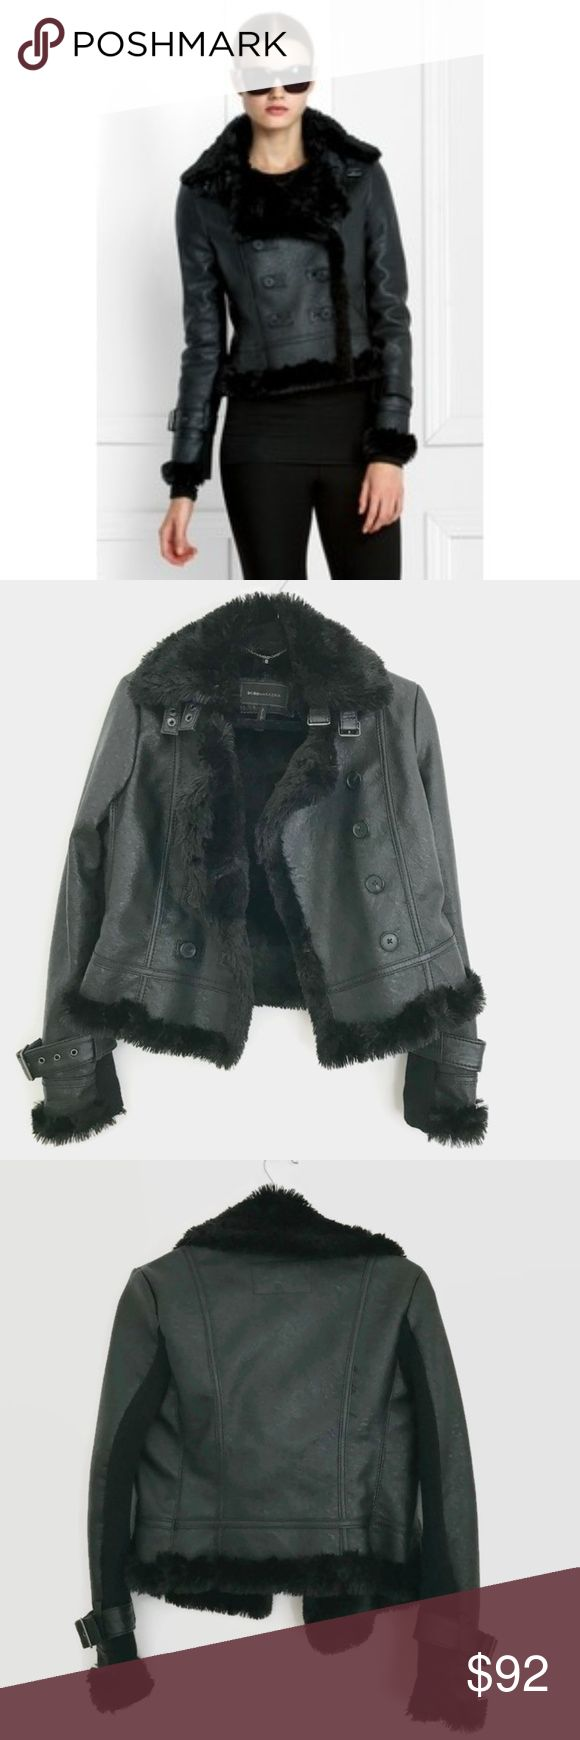 BCBGMaxAzria Double Breasted Faux Shearling Coat BCBGMaxAzria Double Breasted Moto Faux Shearling Black Leather Coat Like new condition Leather has a textured surface Please let me know if you have any questions BCBGMaxAzria Jackets & Coats